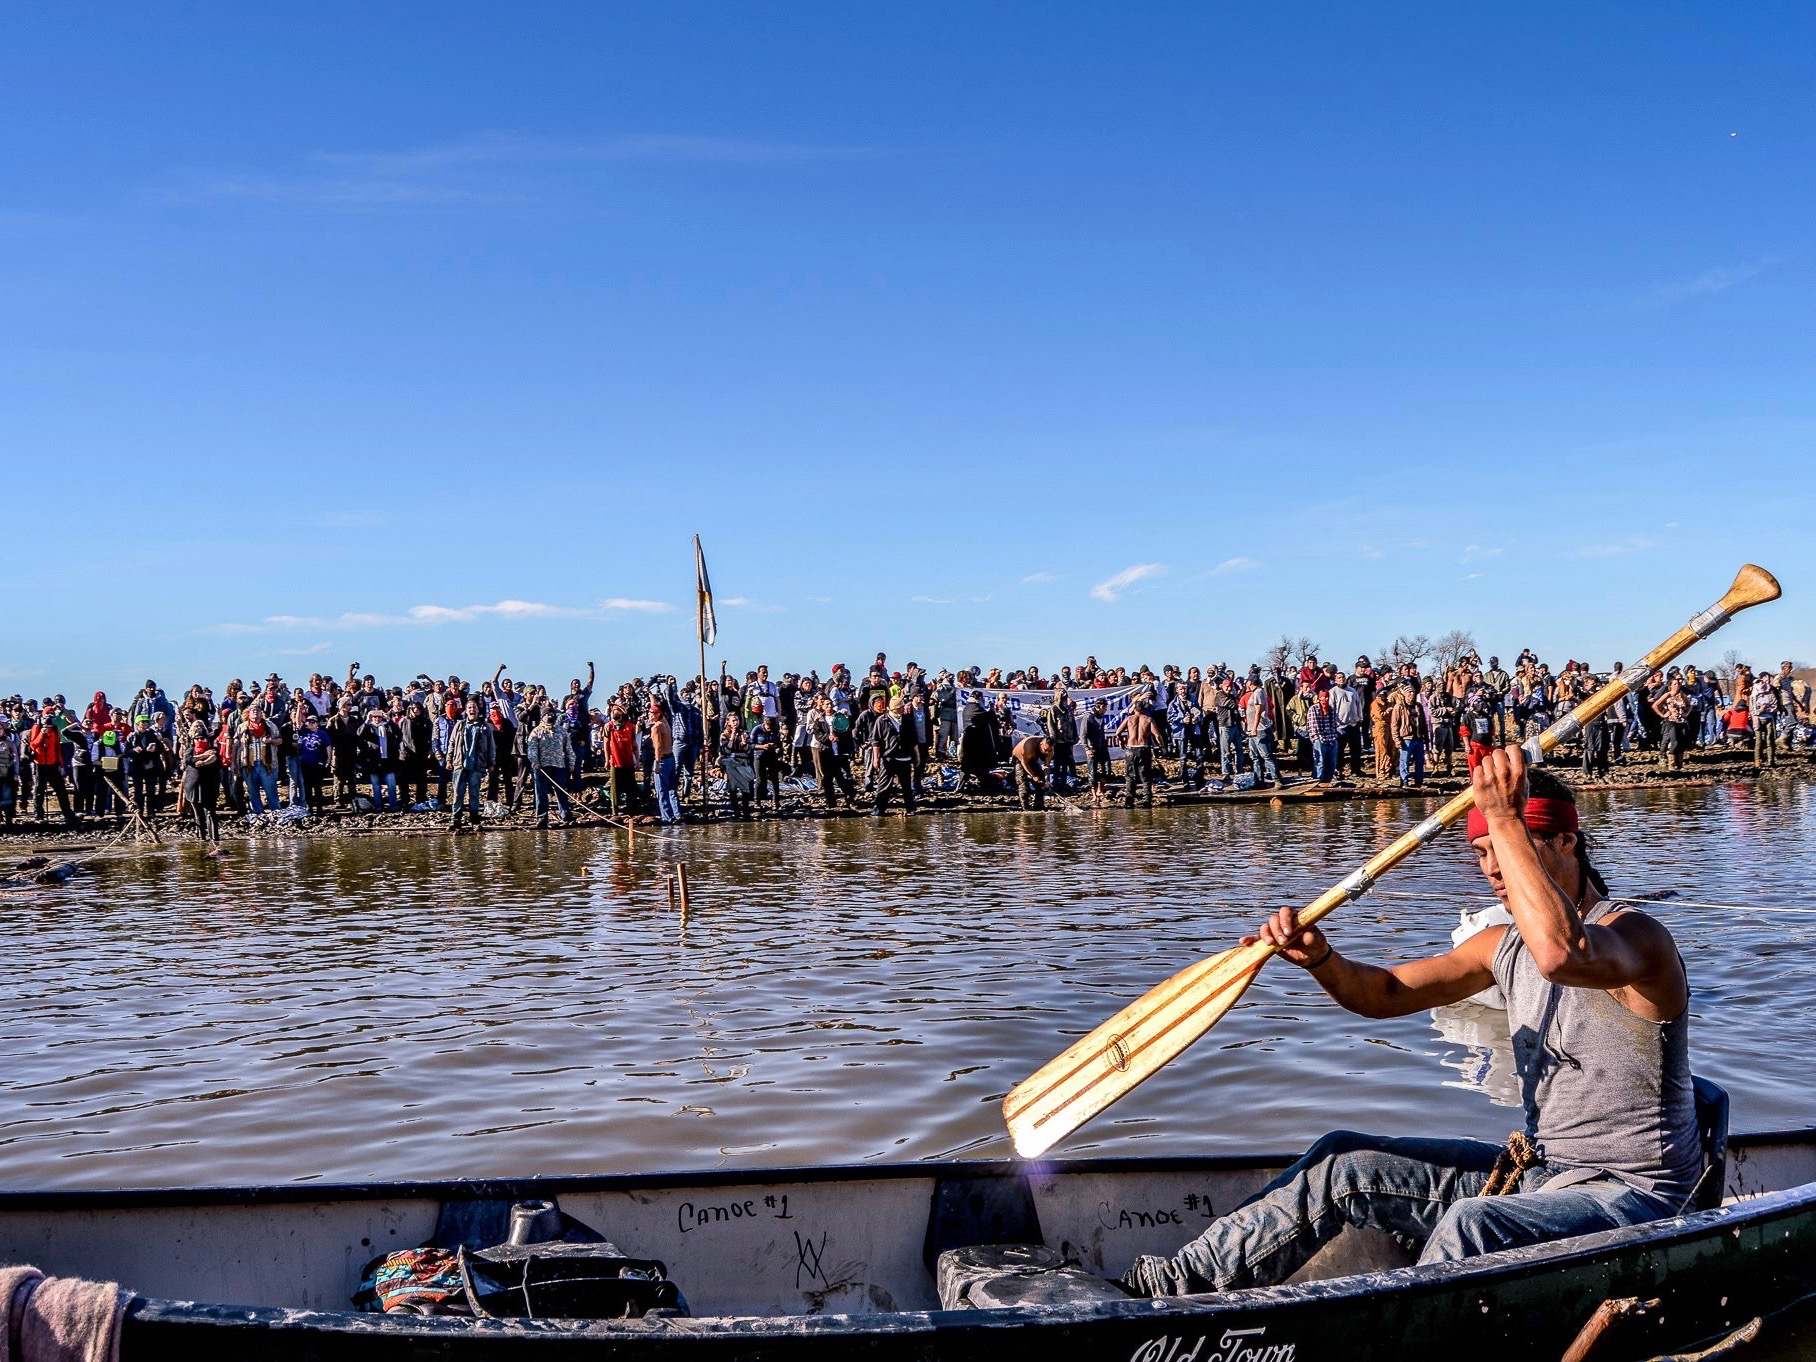 Army Corps calls Dakota Access Pipeline resisters 'trespassers' in letter to county